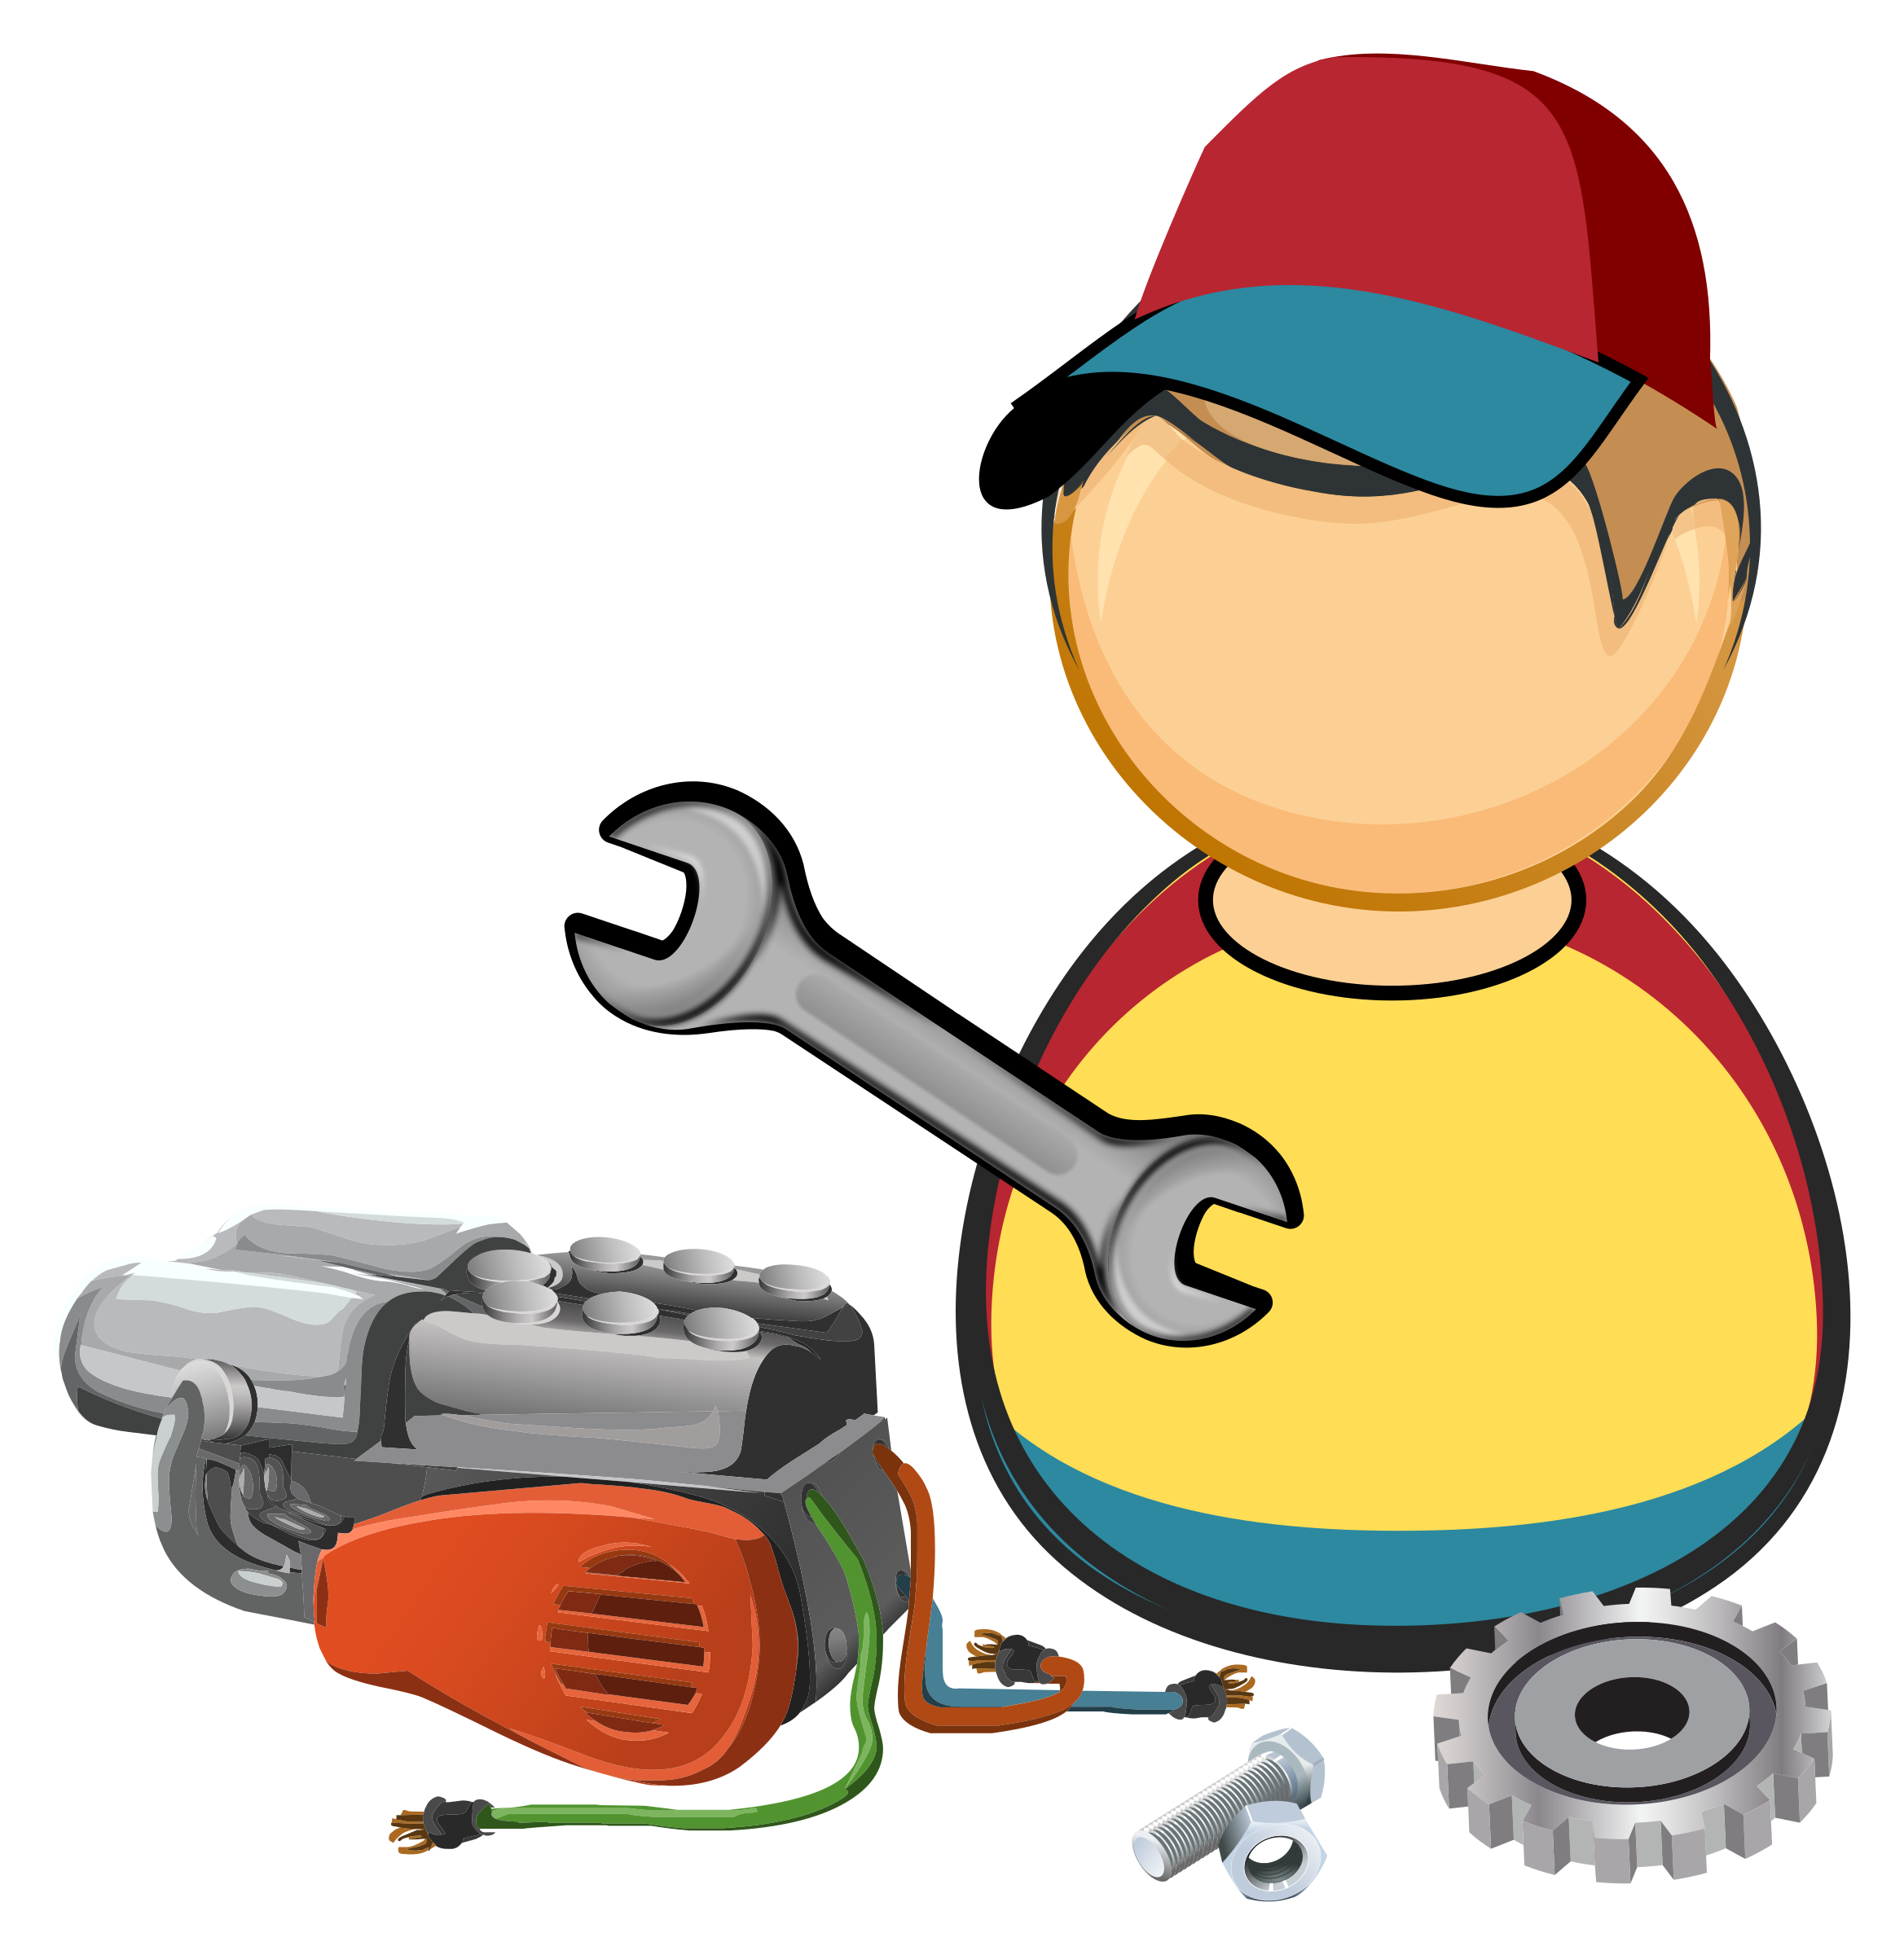 Car mechanics clipart svg royalty free Clipart - Car / automotive mechanic svg royalty free